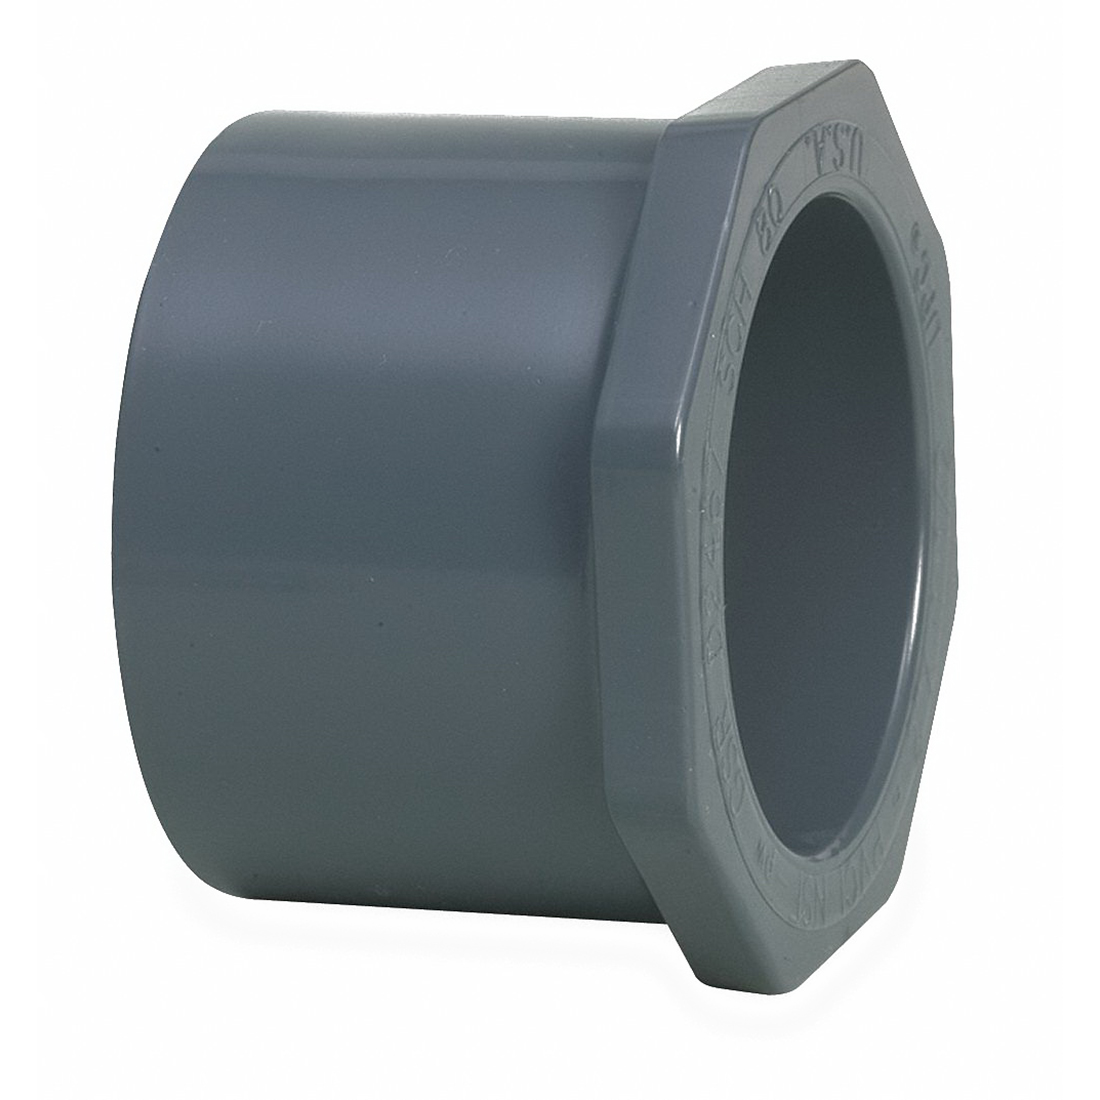 Gray PVC SCH 80 Flush Style Reducer Bushing, 3 in x 1 in, Spigot x Socket